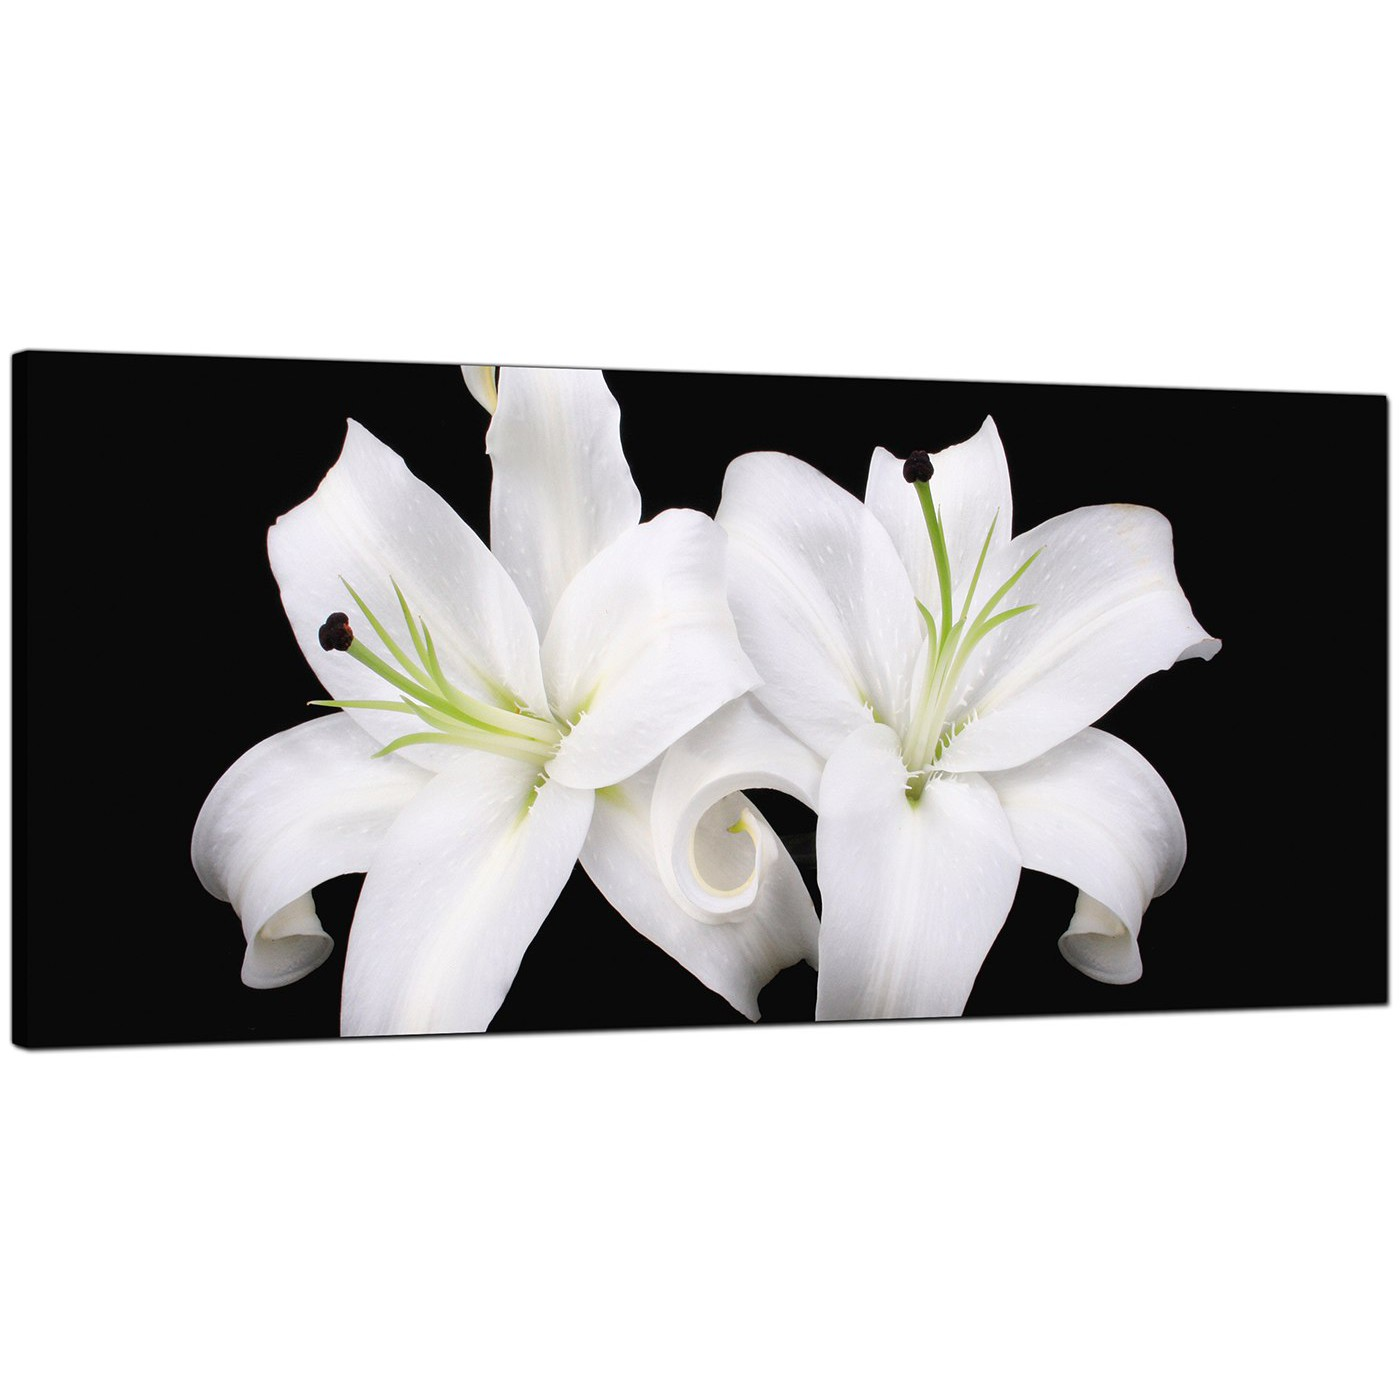 Black And White Canvas Prints Large Black And White Canvas Prints Of Lily Flowers